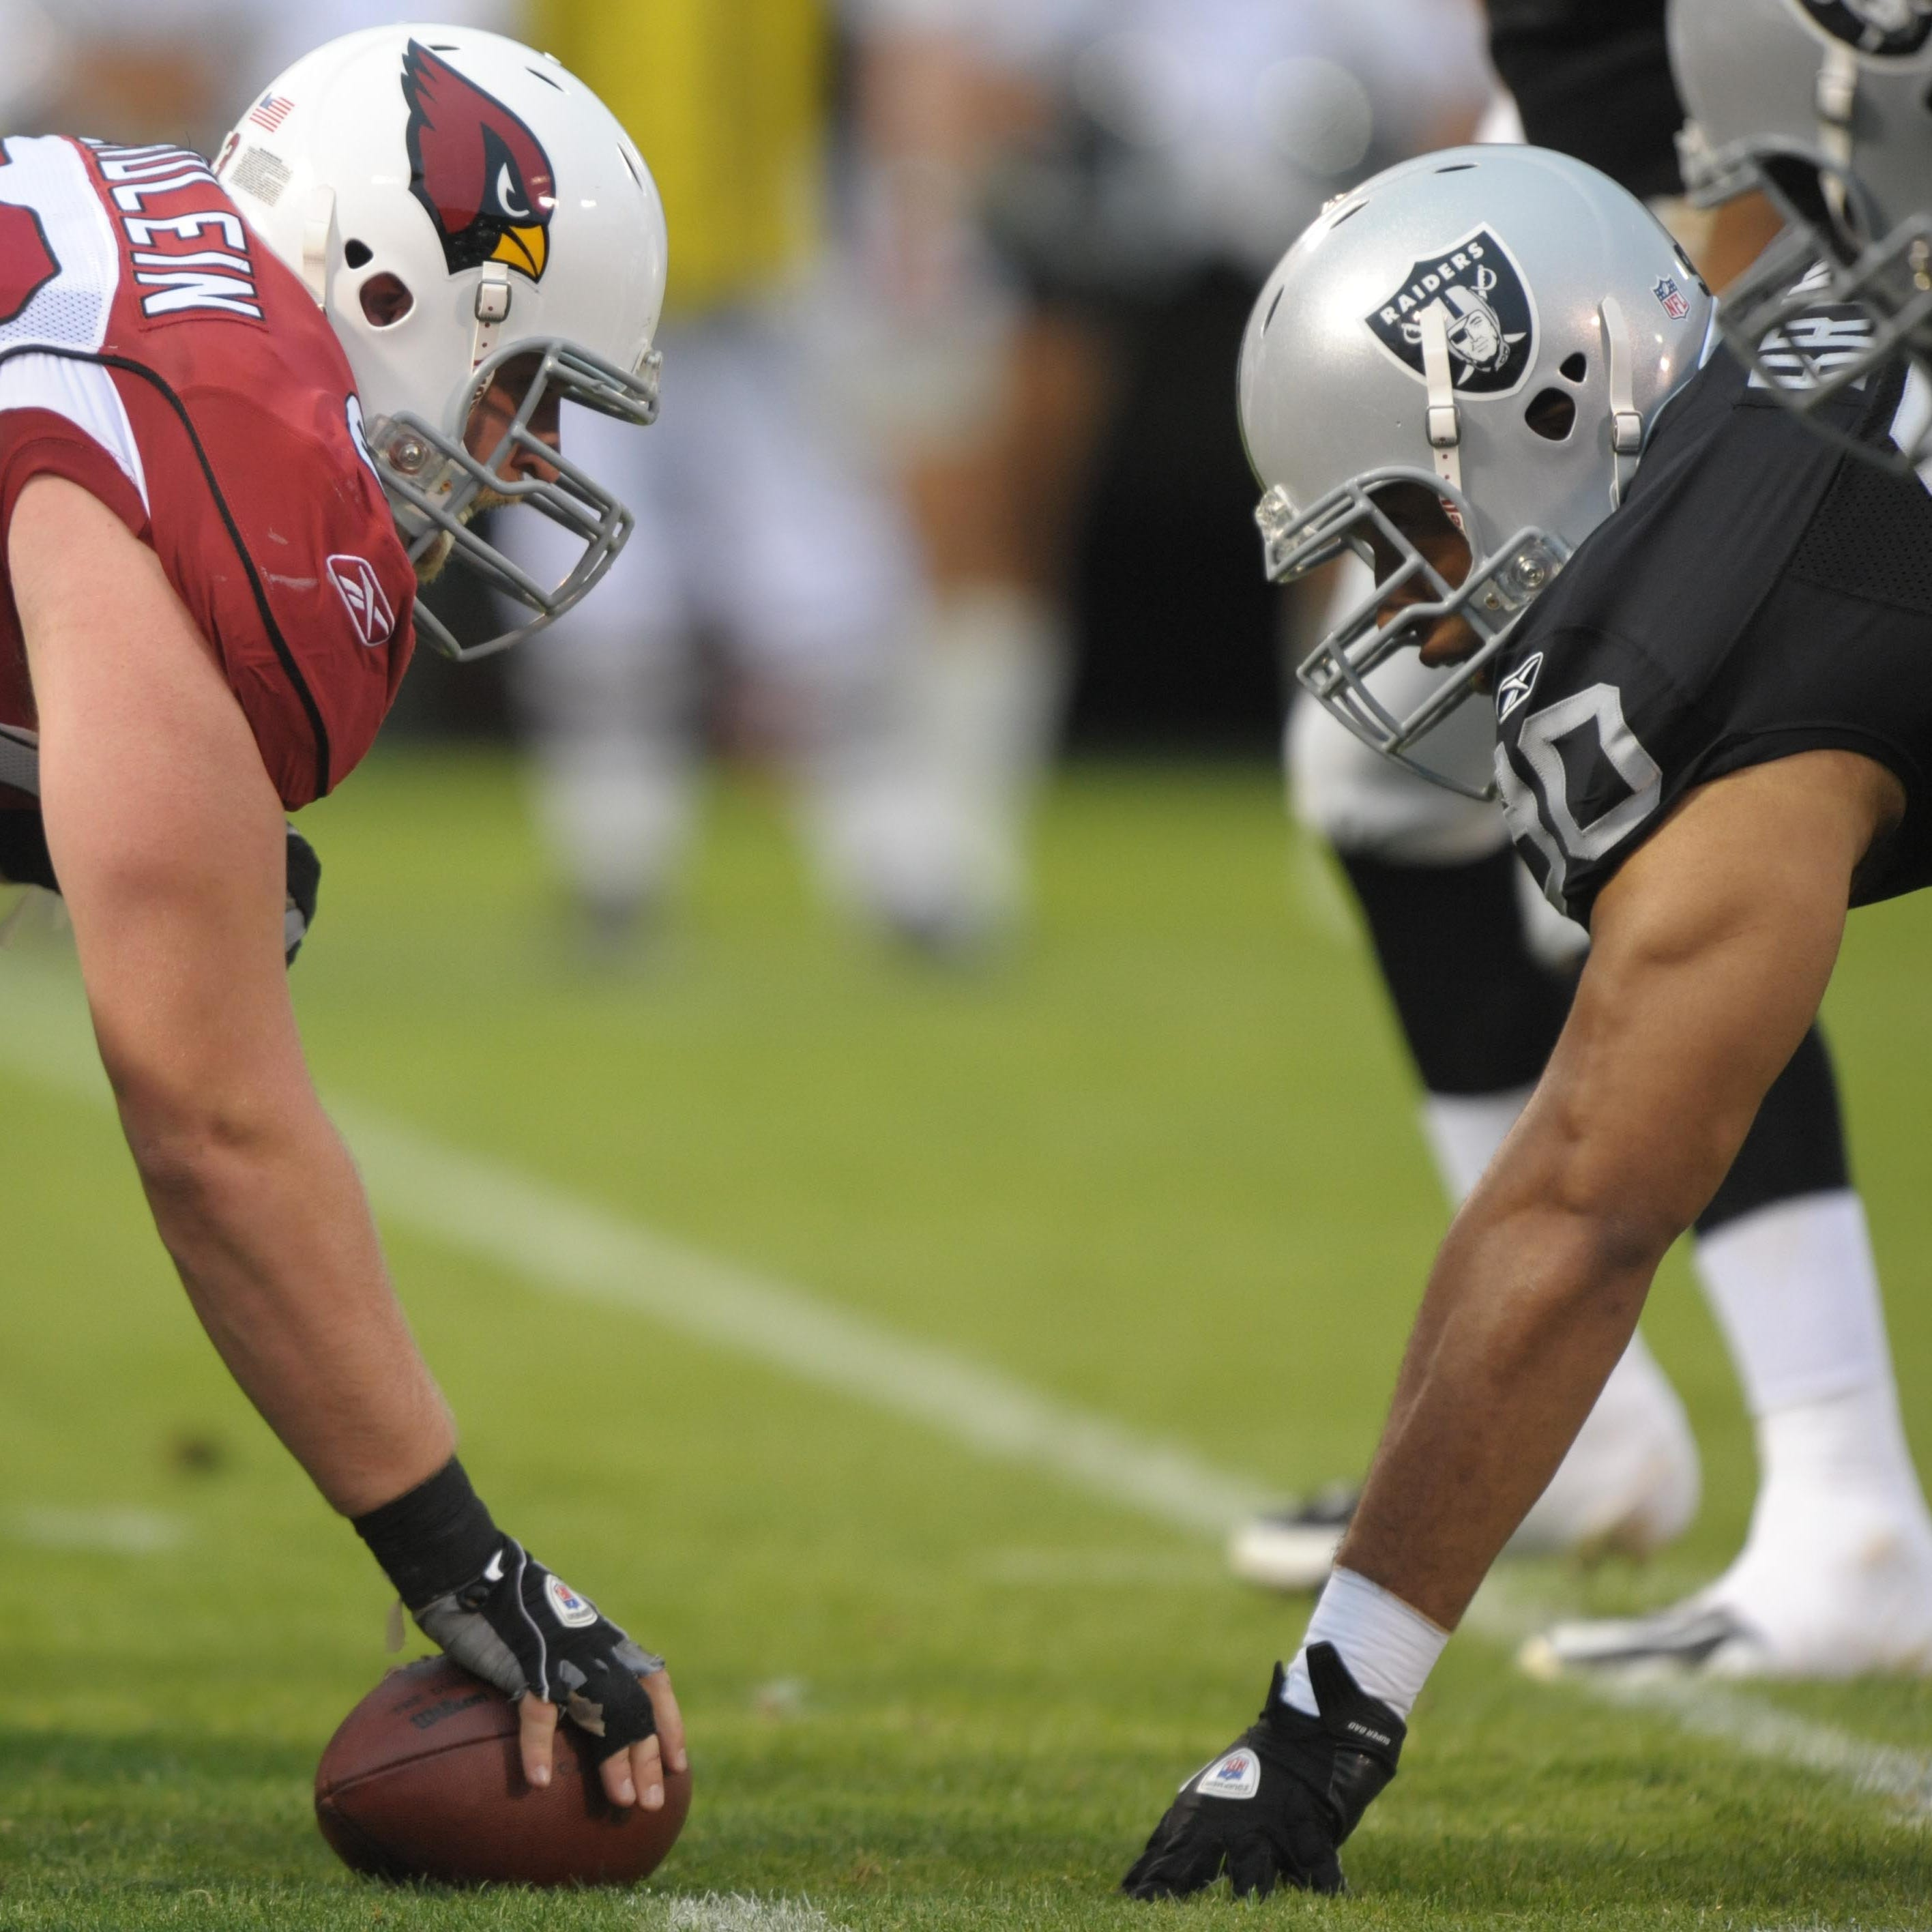 Arizona Cardinals vs. Oakland Raiders: Scouting report, prediction